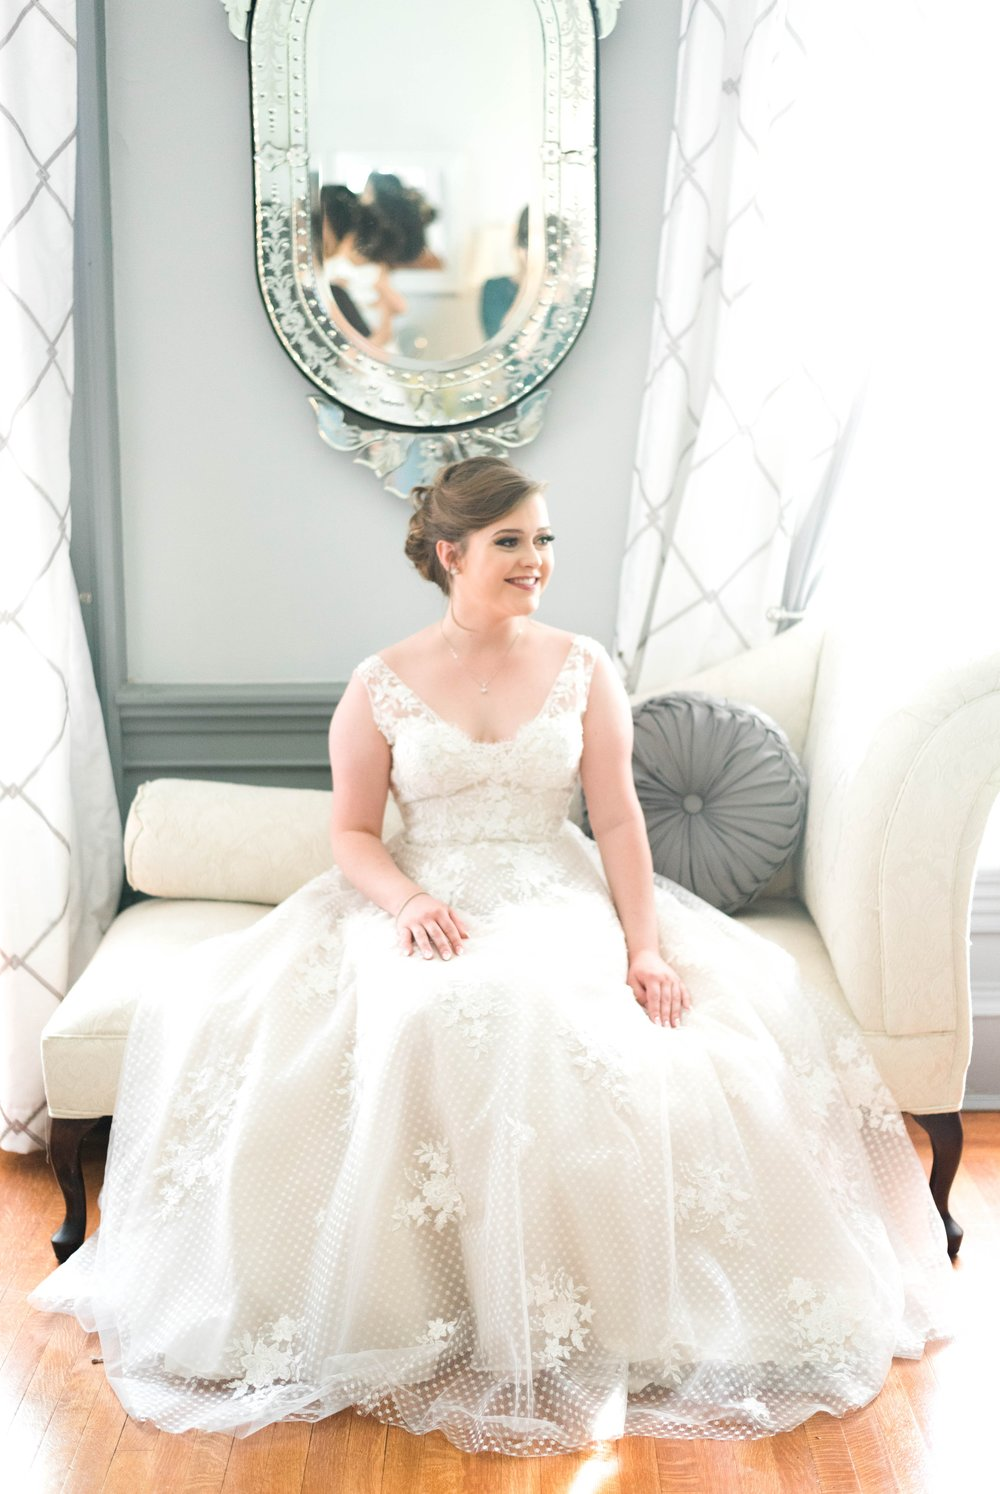 Jillian+Abi_OakridgeEstate_Wedding_VirginiaWeddingPhotographer_SpringWedding 15.jpg